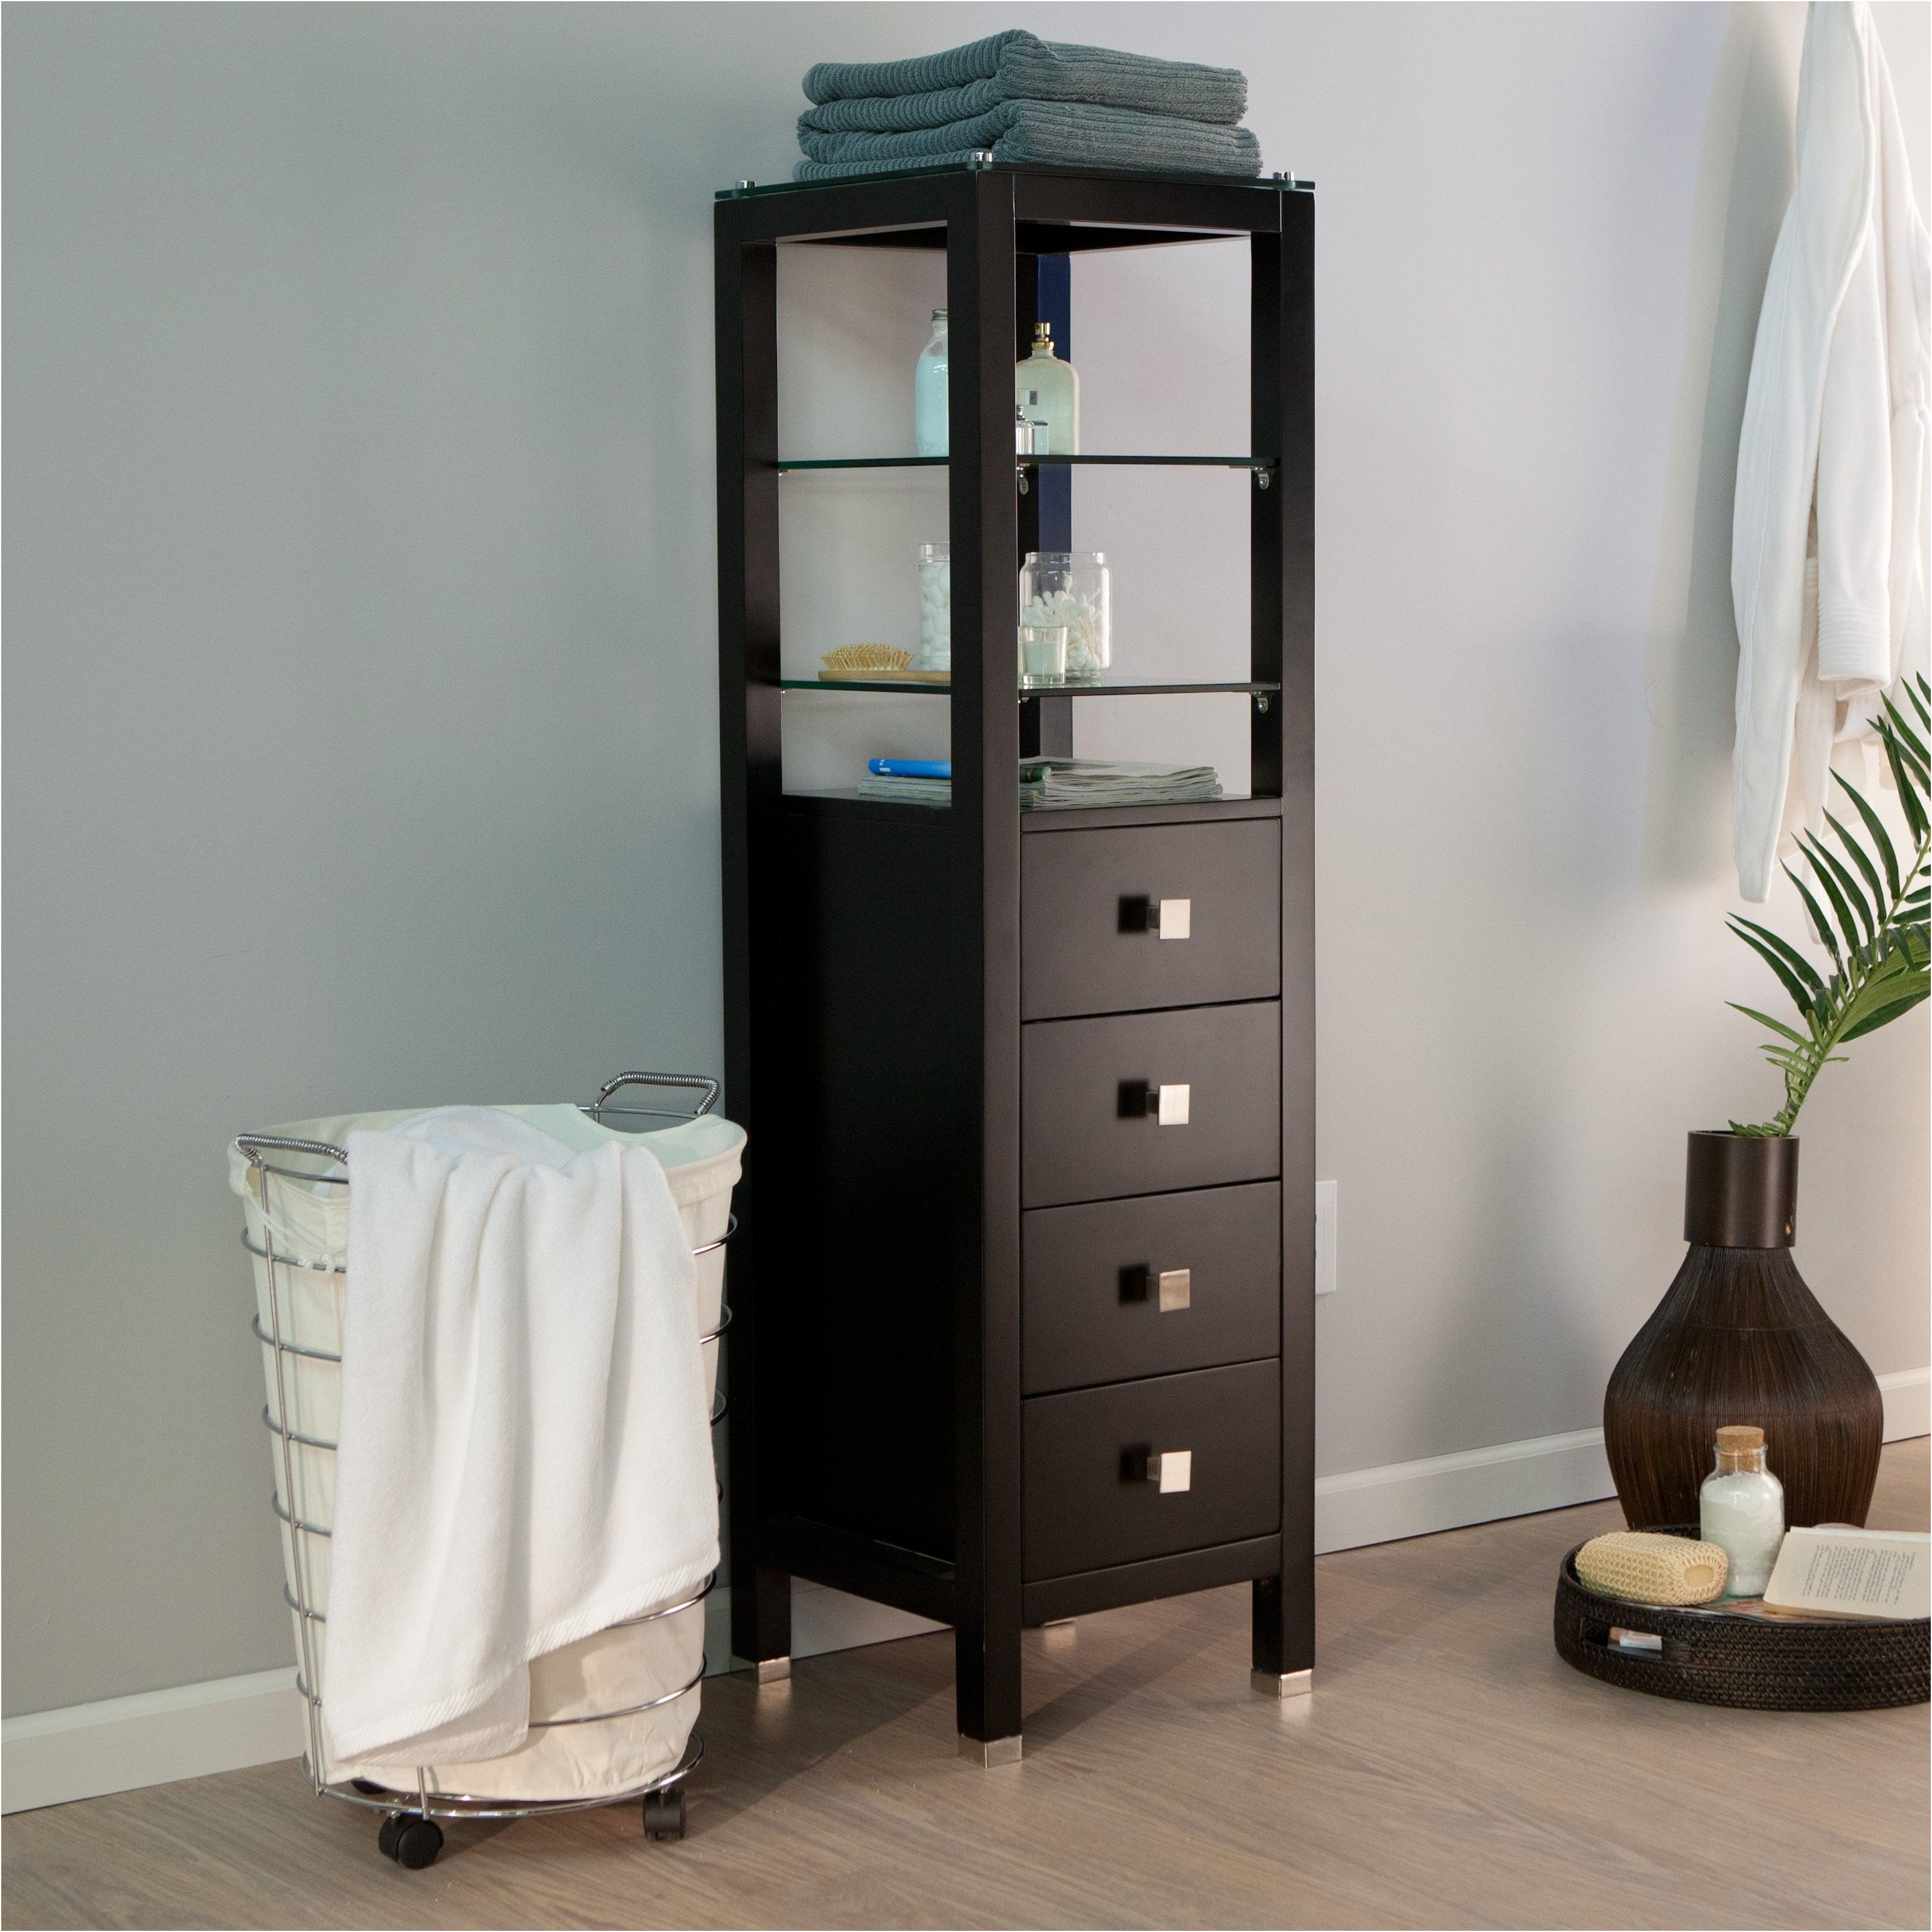 Tall Skinny Bathroom Storage Cabinet Best Home Furniture From Cabinets With Drawers